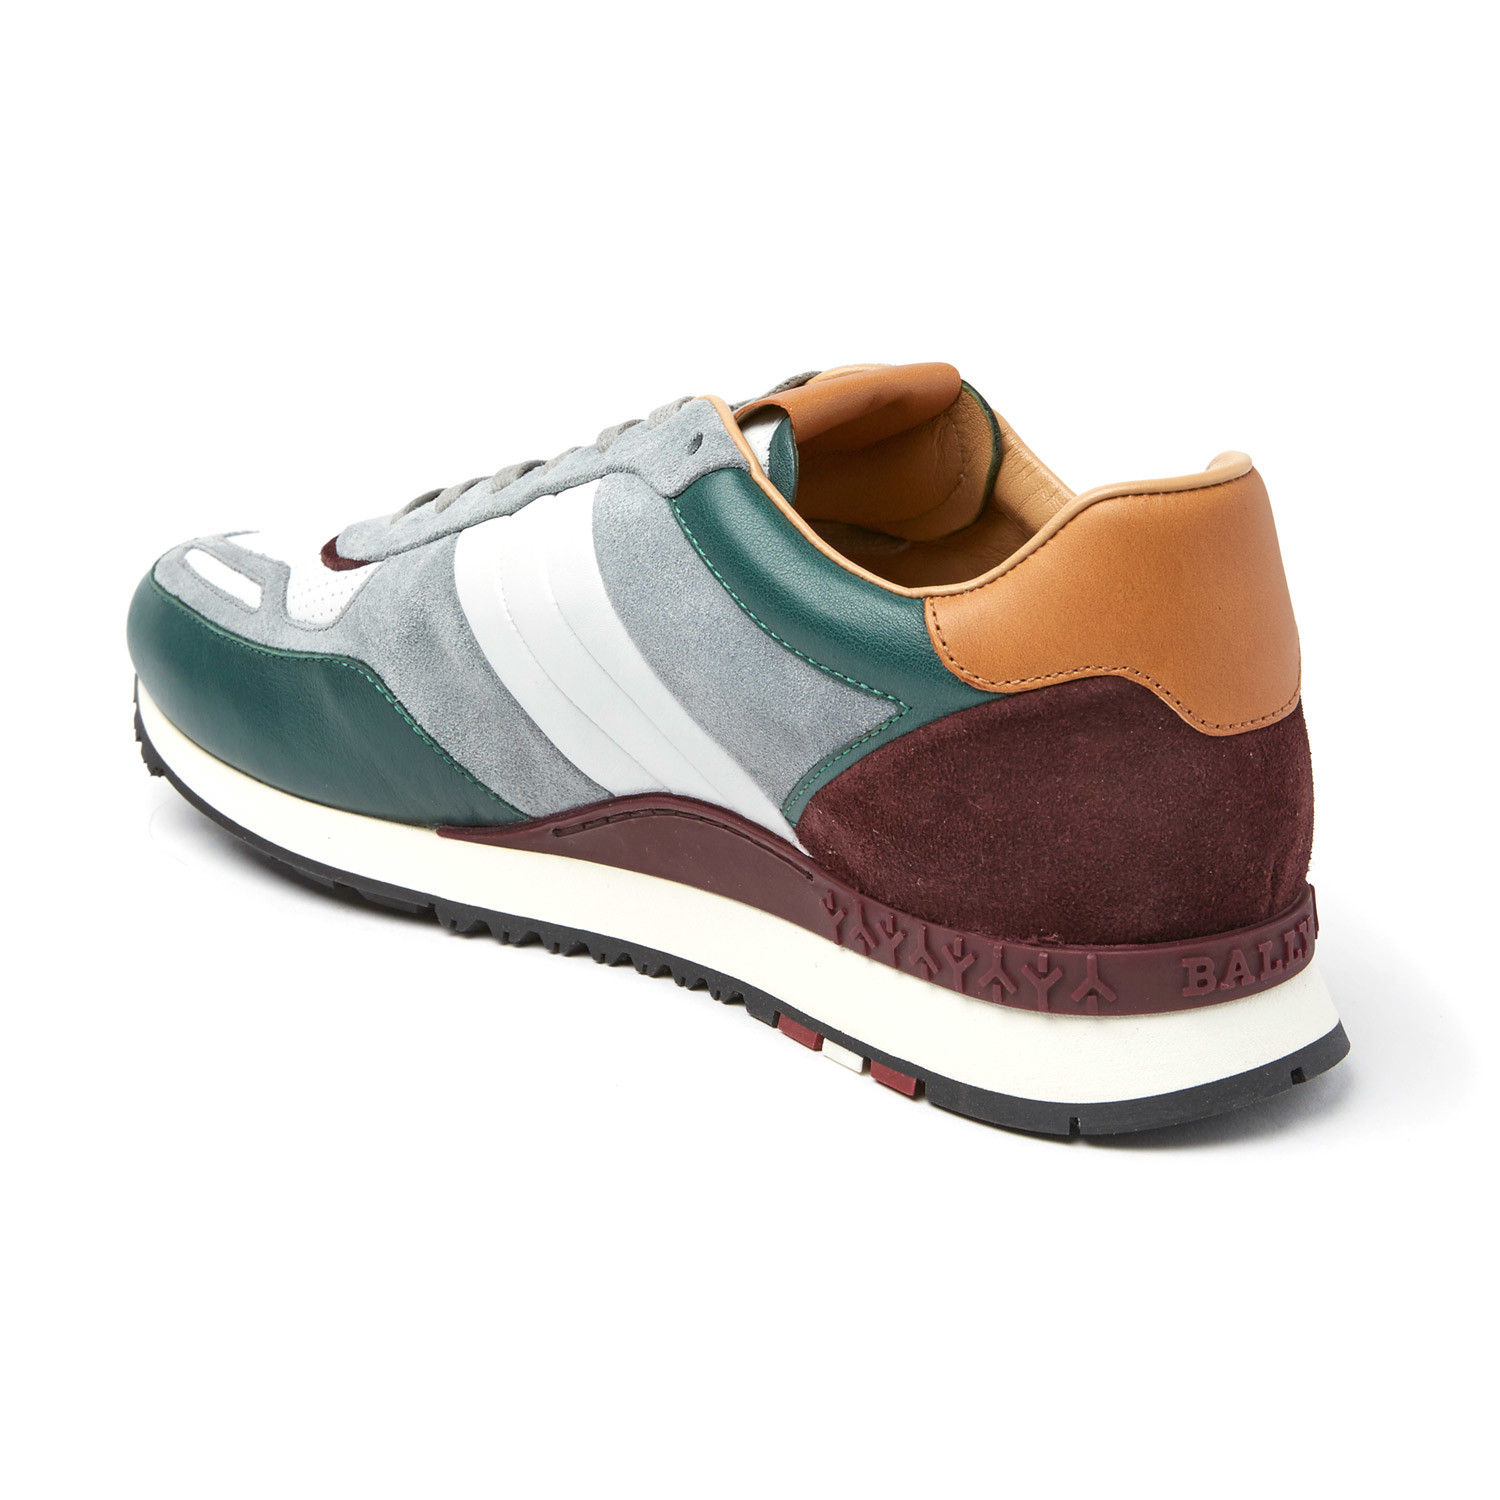 BALLY - Exquisite Swiss-Designed Footwear - Touch of Modern